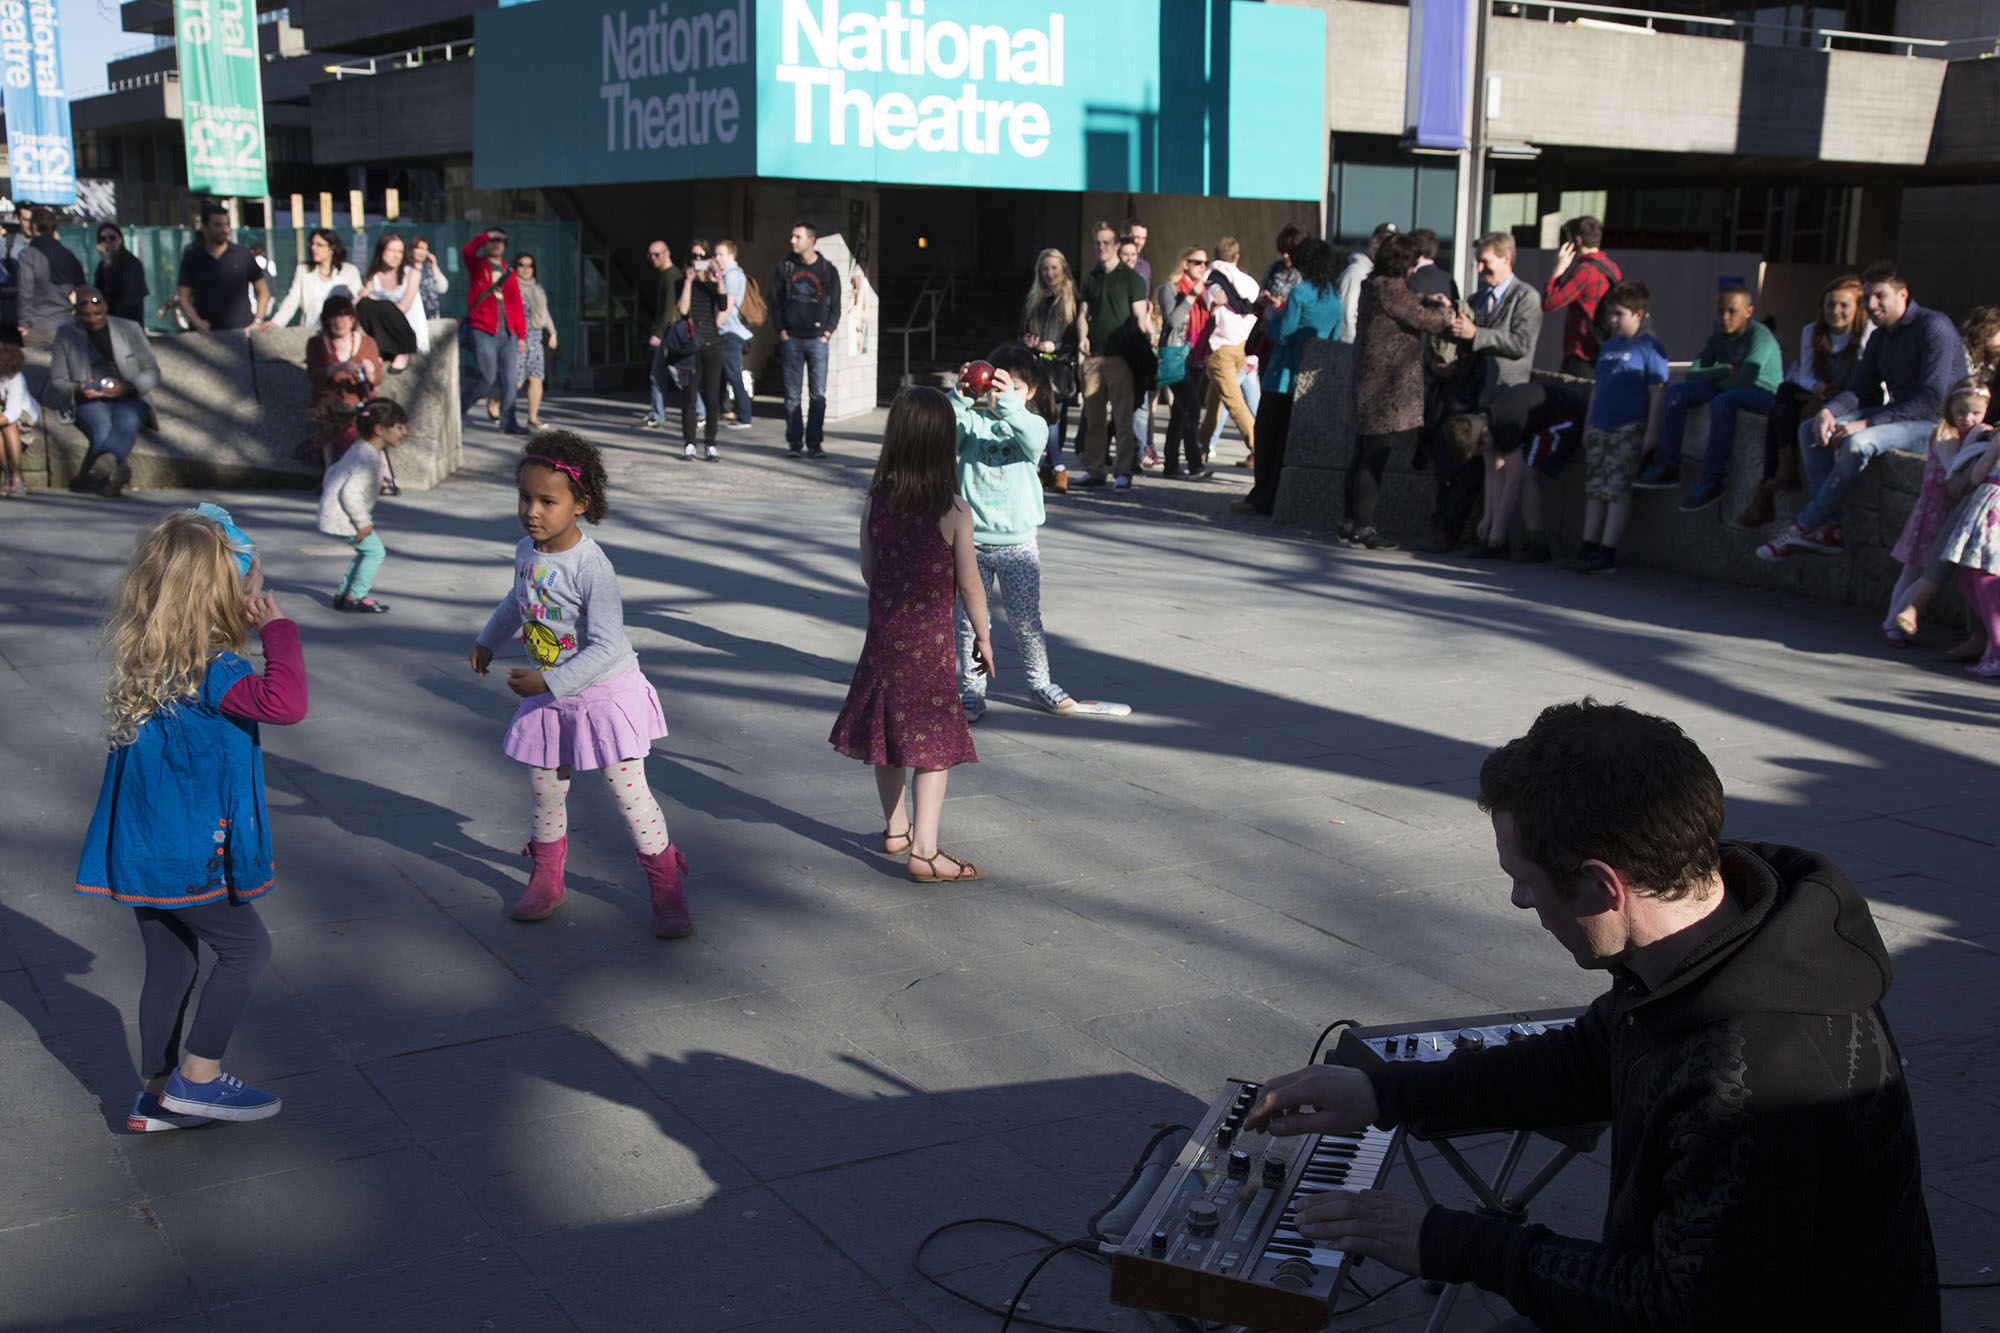 Children spontaneously start to dance to music being made by a busker.